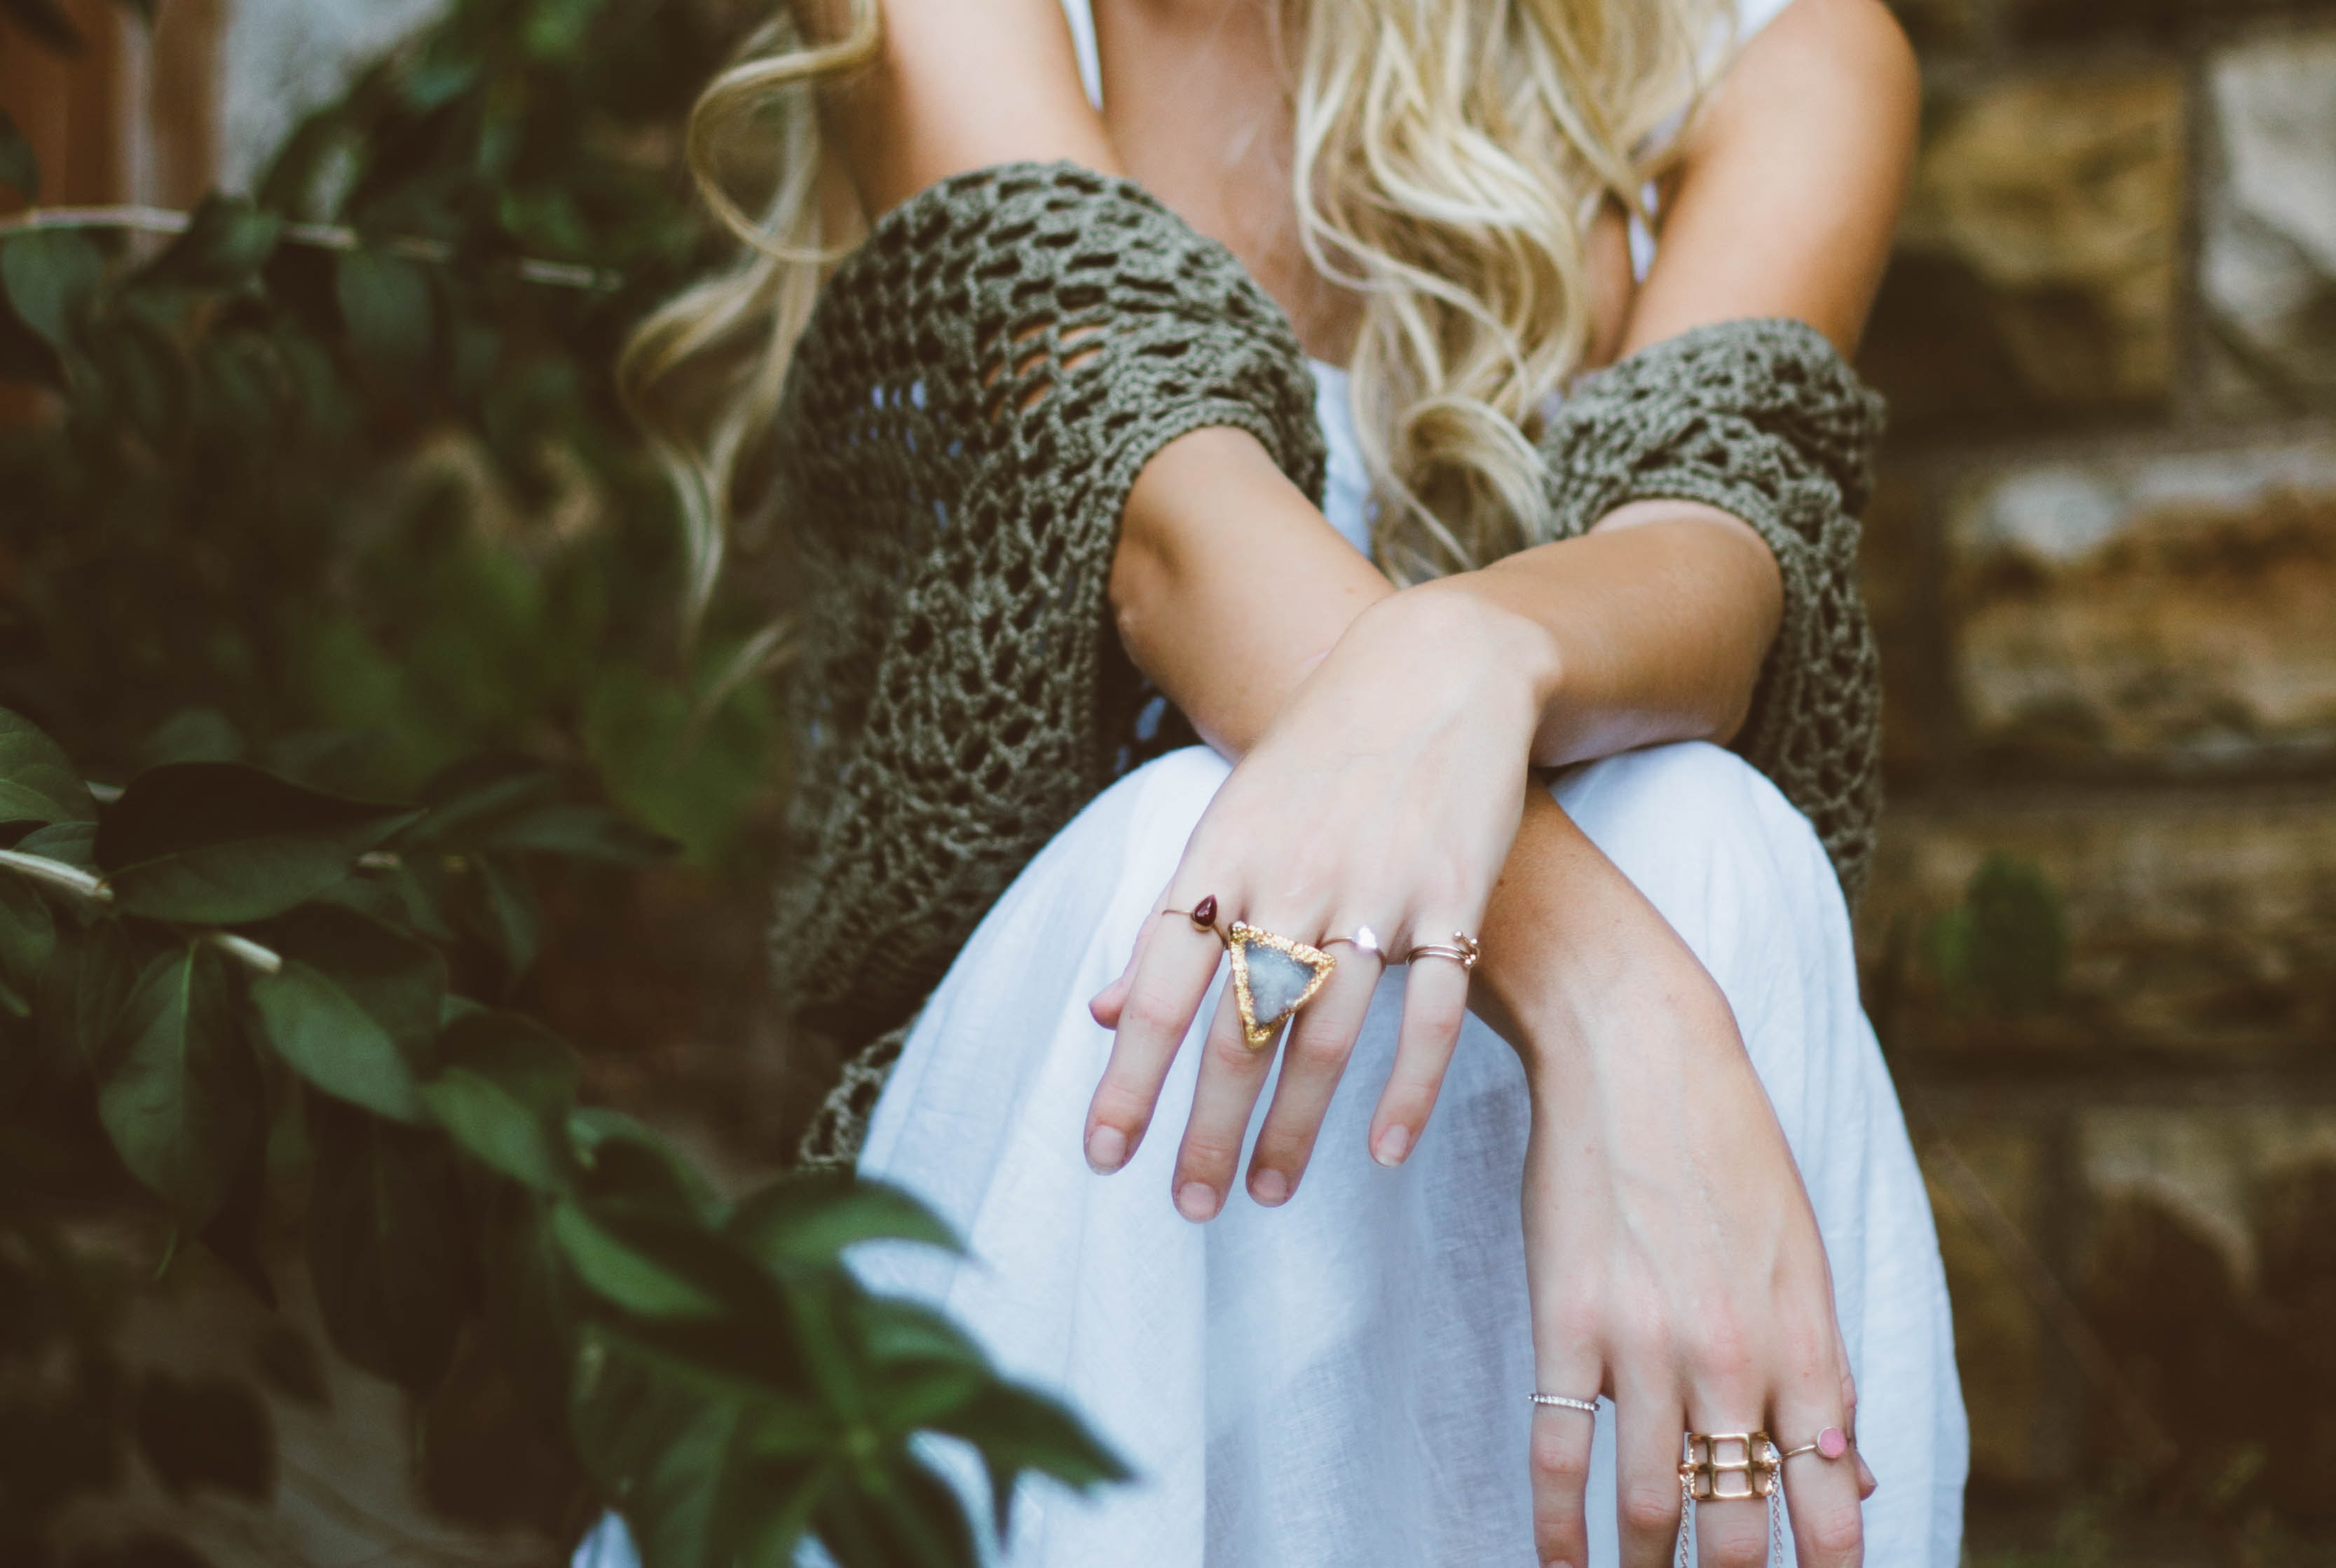 The 12 Best Sustainable and Ethical Jewelry Brands